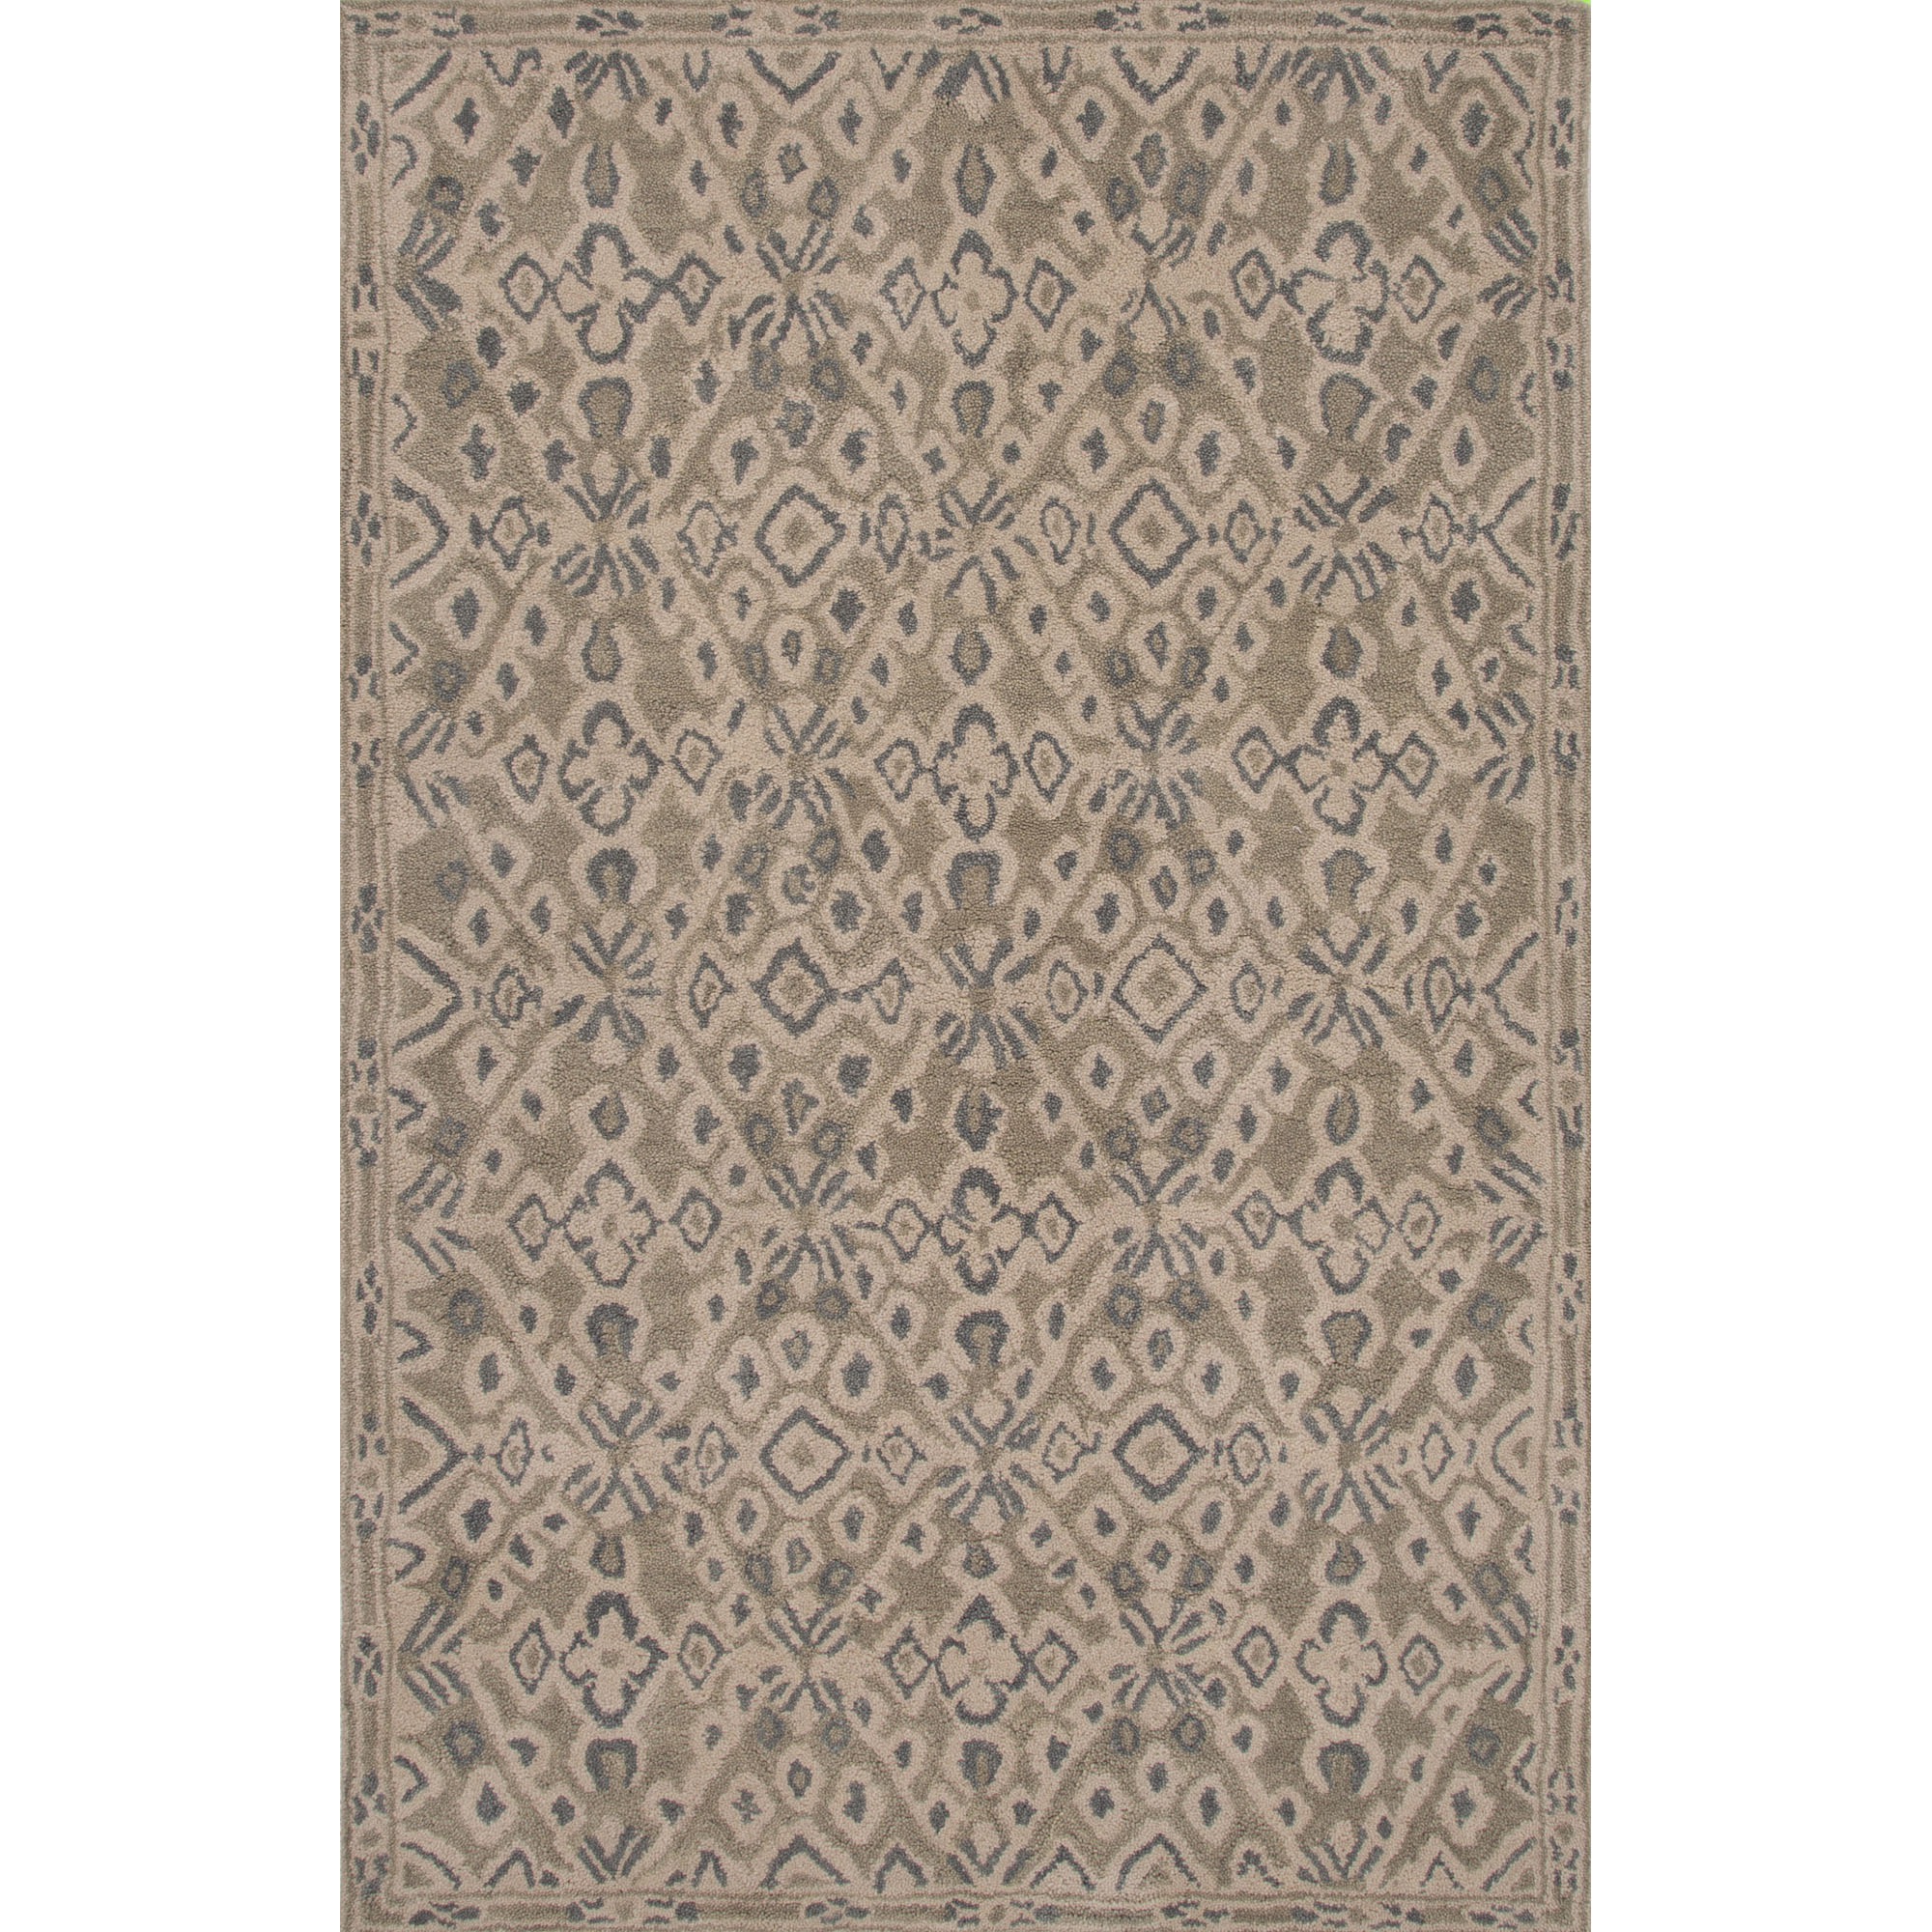 JAIPUR Rugs Traditions Made Modern Tufted 8 x 11 Rug - Item Number: RUG122195